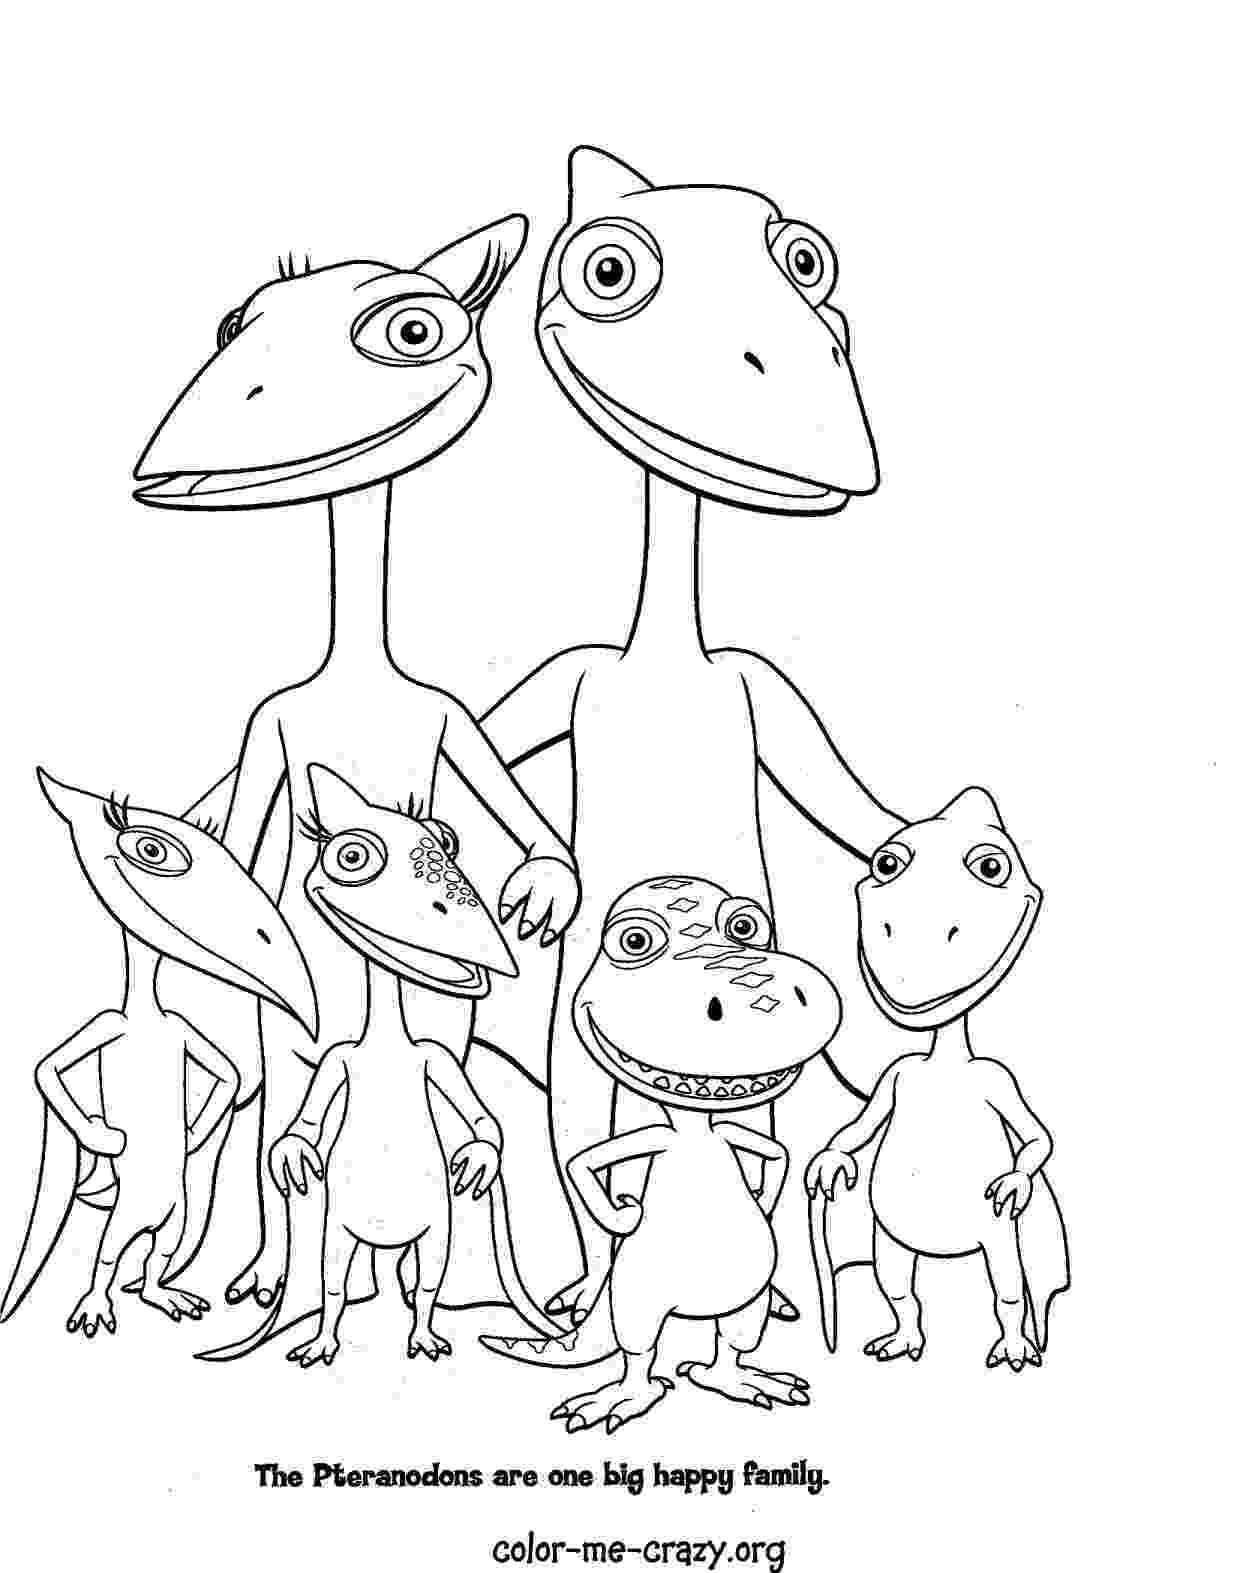 dinosaur colouring pictures to print fun learn free worksheets for kid ภาพระบายส print colouring pictures dinosaur to